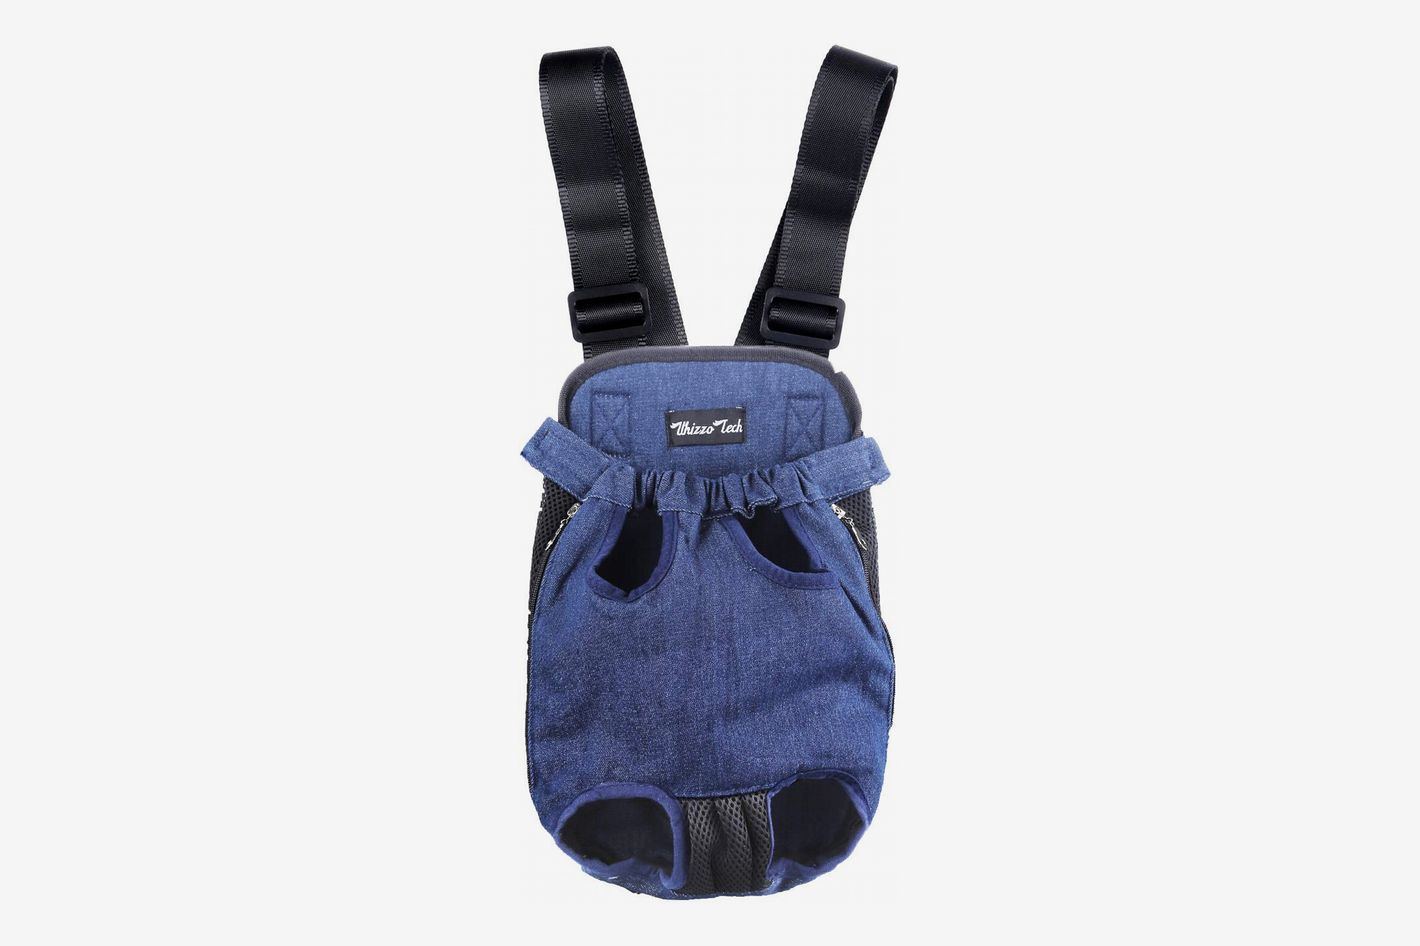 7a0f1f528c0 13 Best Dog Carriers on Amazon 2019